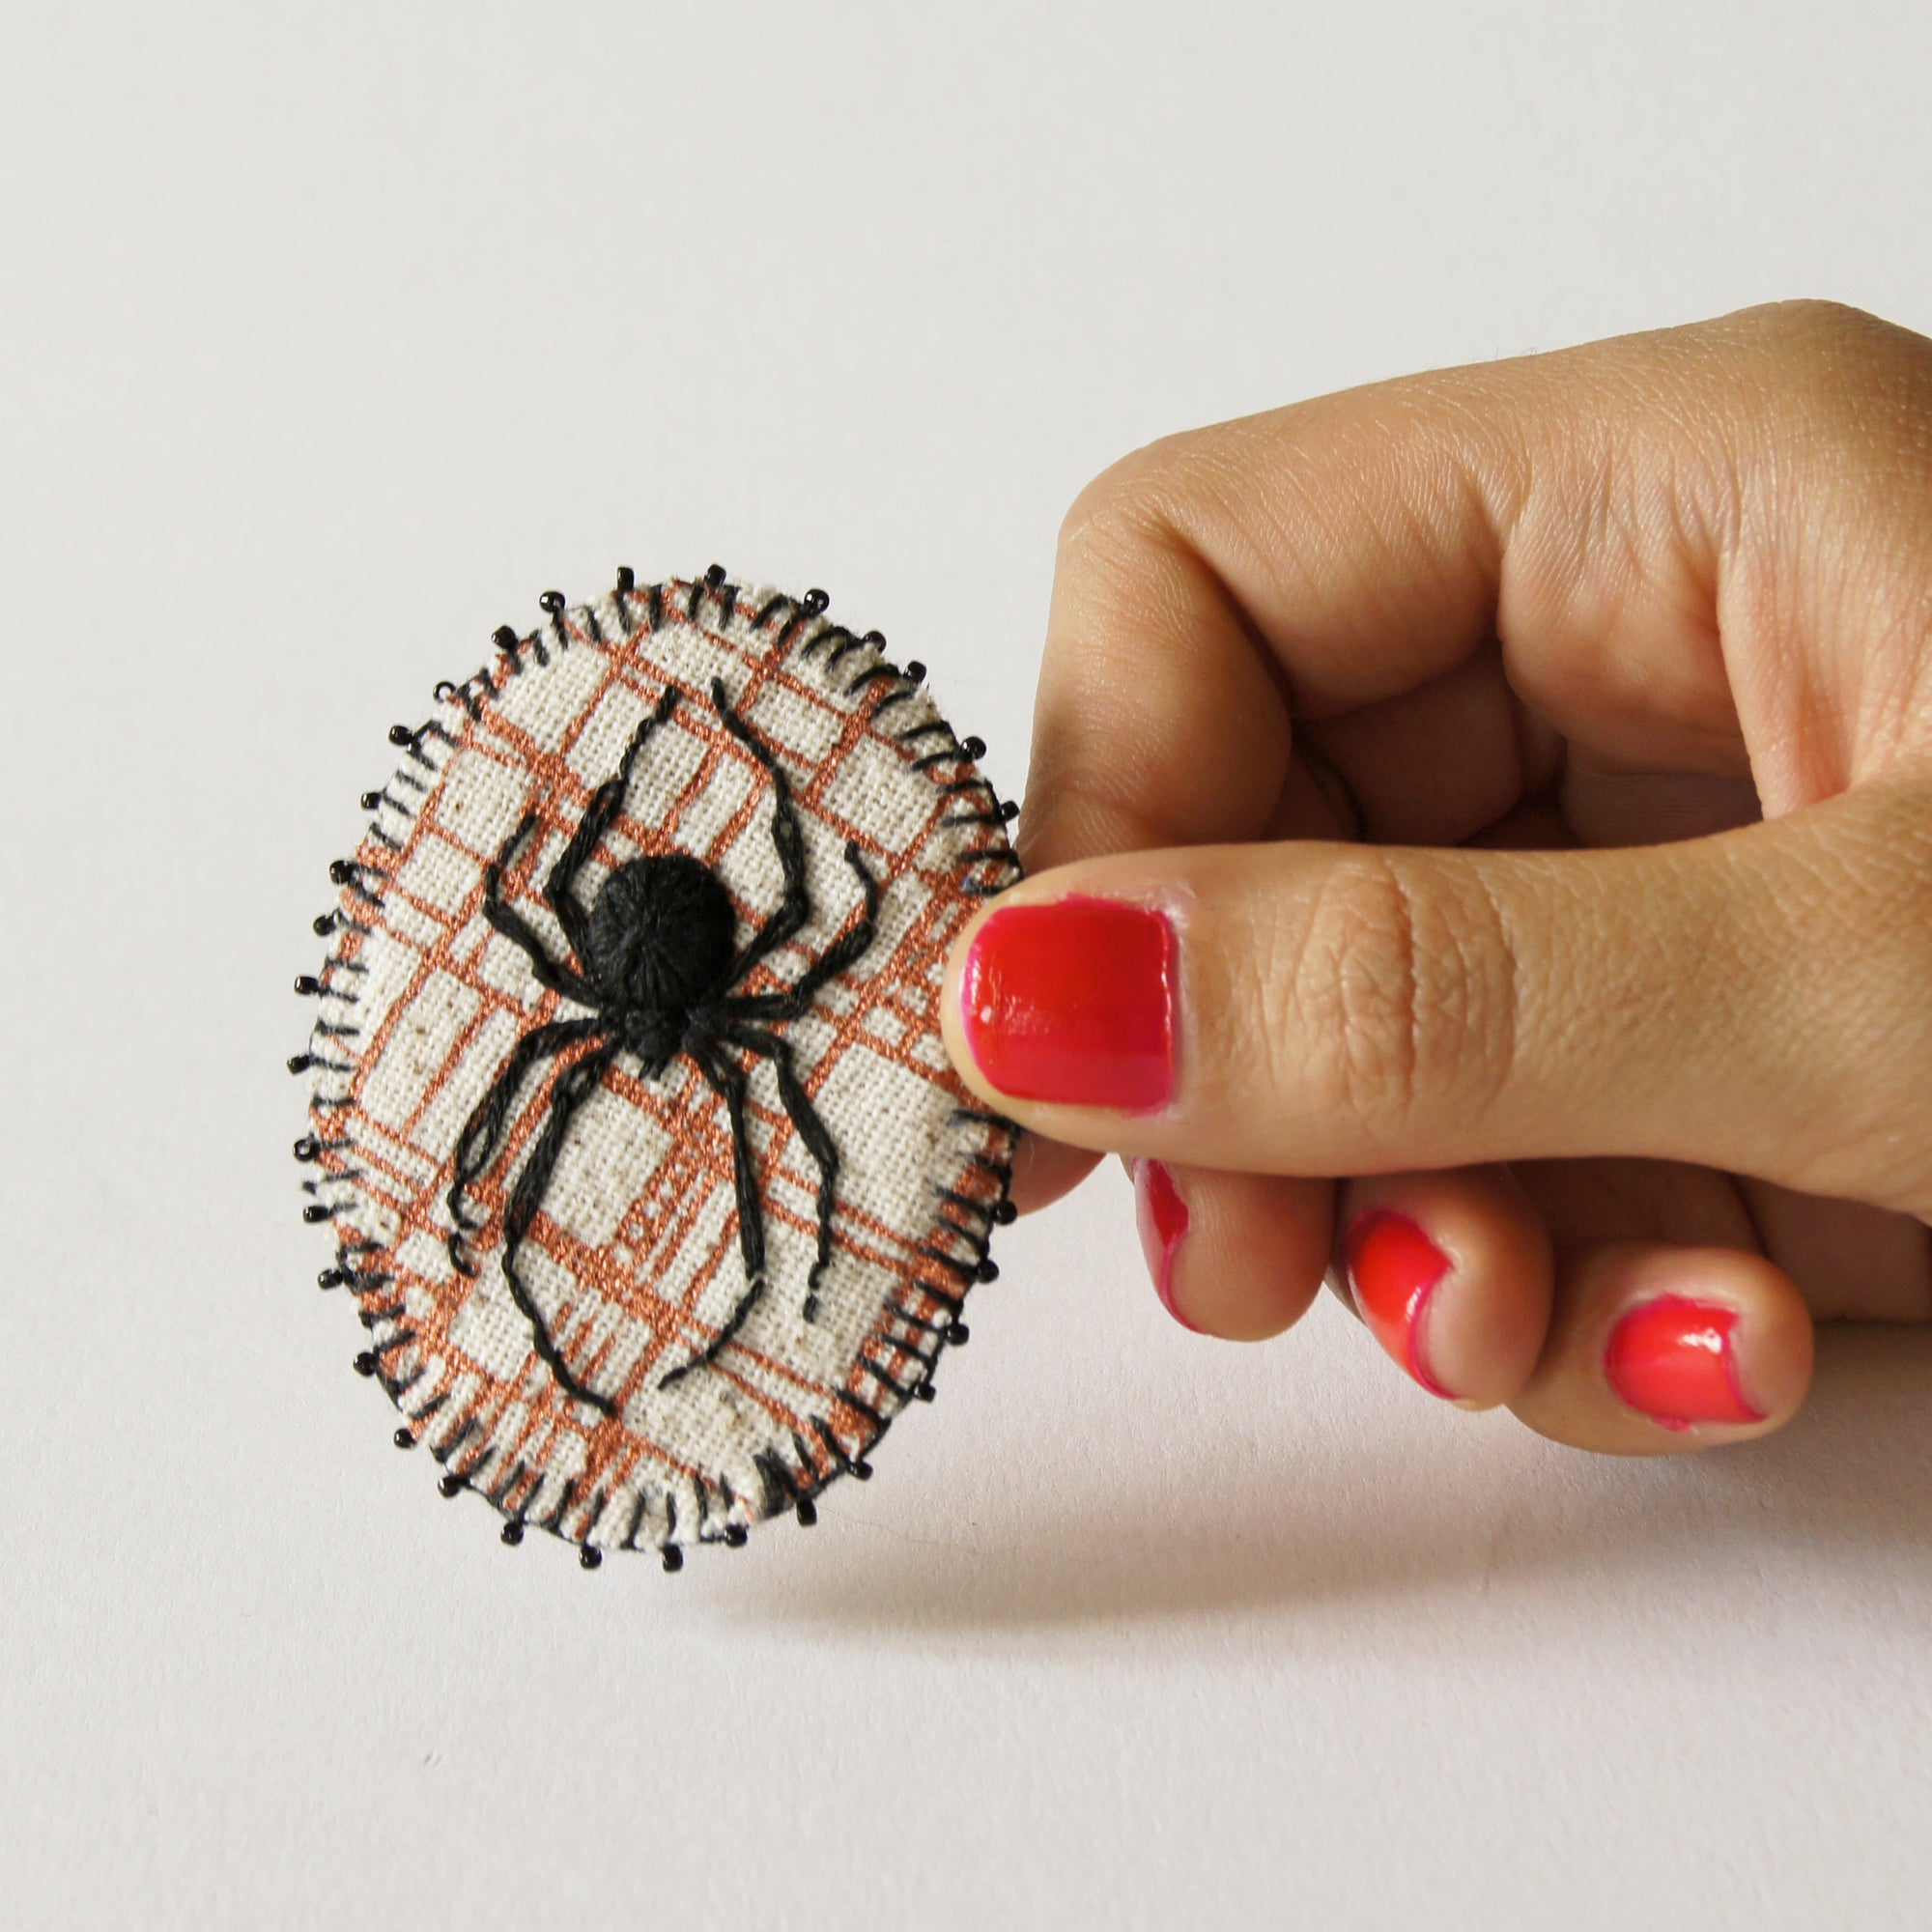 Hand Embroidered Black Widow Spider Brooch Arachnida Jewelry